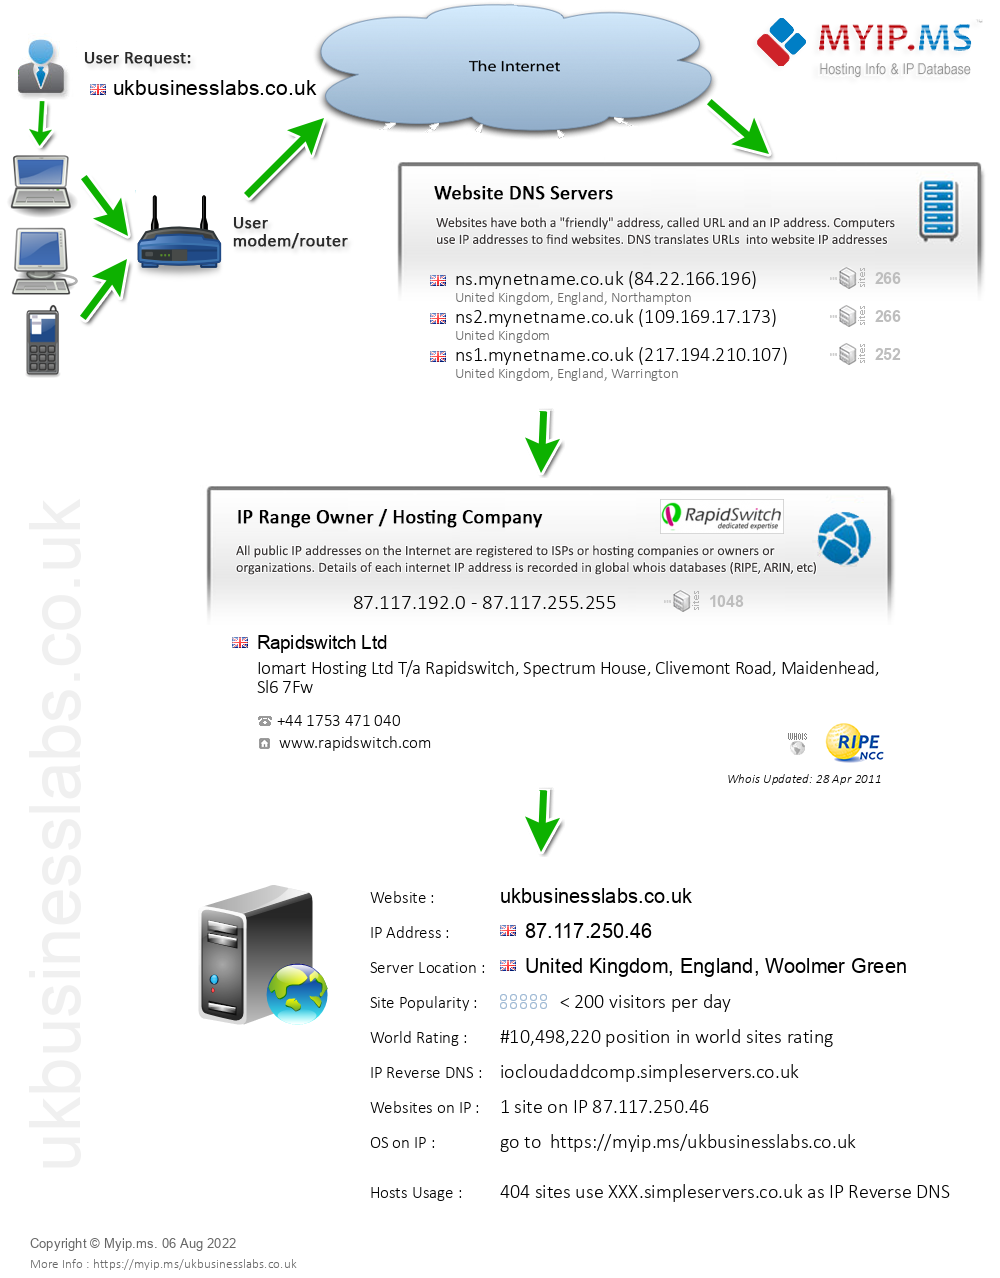 Ukbusinesslabs.co.uk - Website Hosting Visual IP Diagram